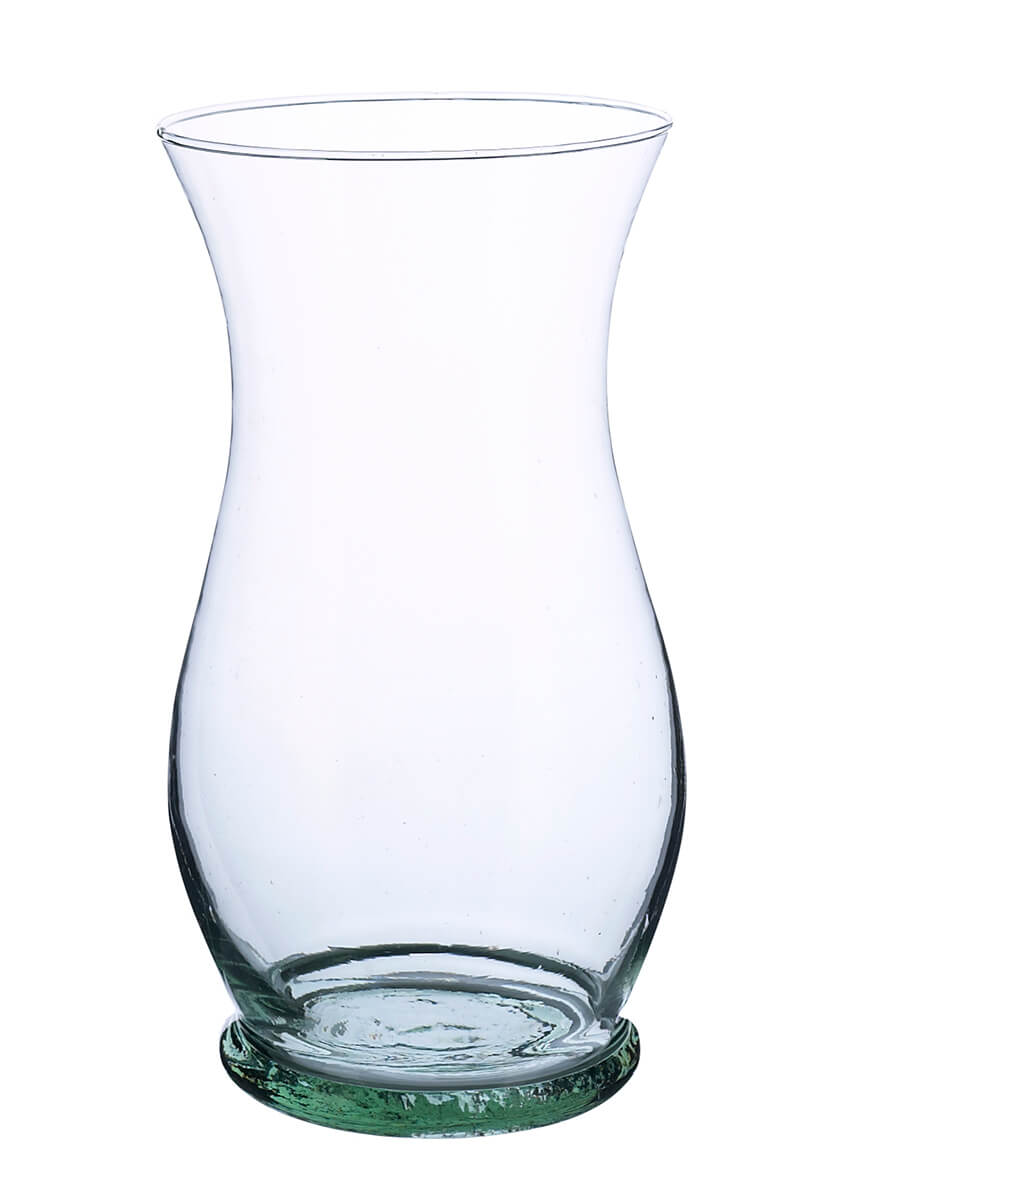 florist clear glass vases 10in gala urn vase. Black Bedroom Furniture Sets. Home Design Ideas